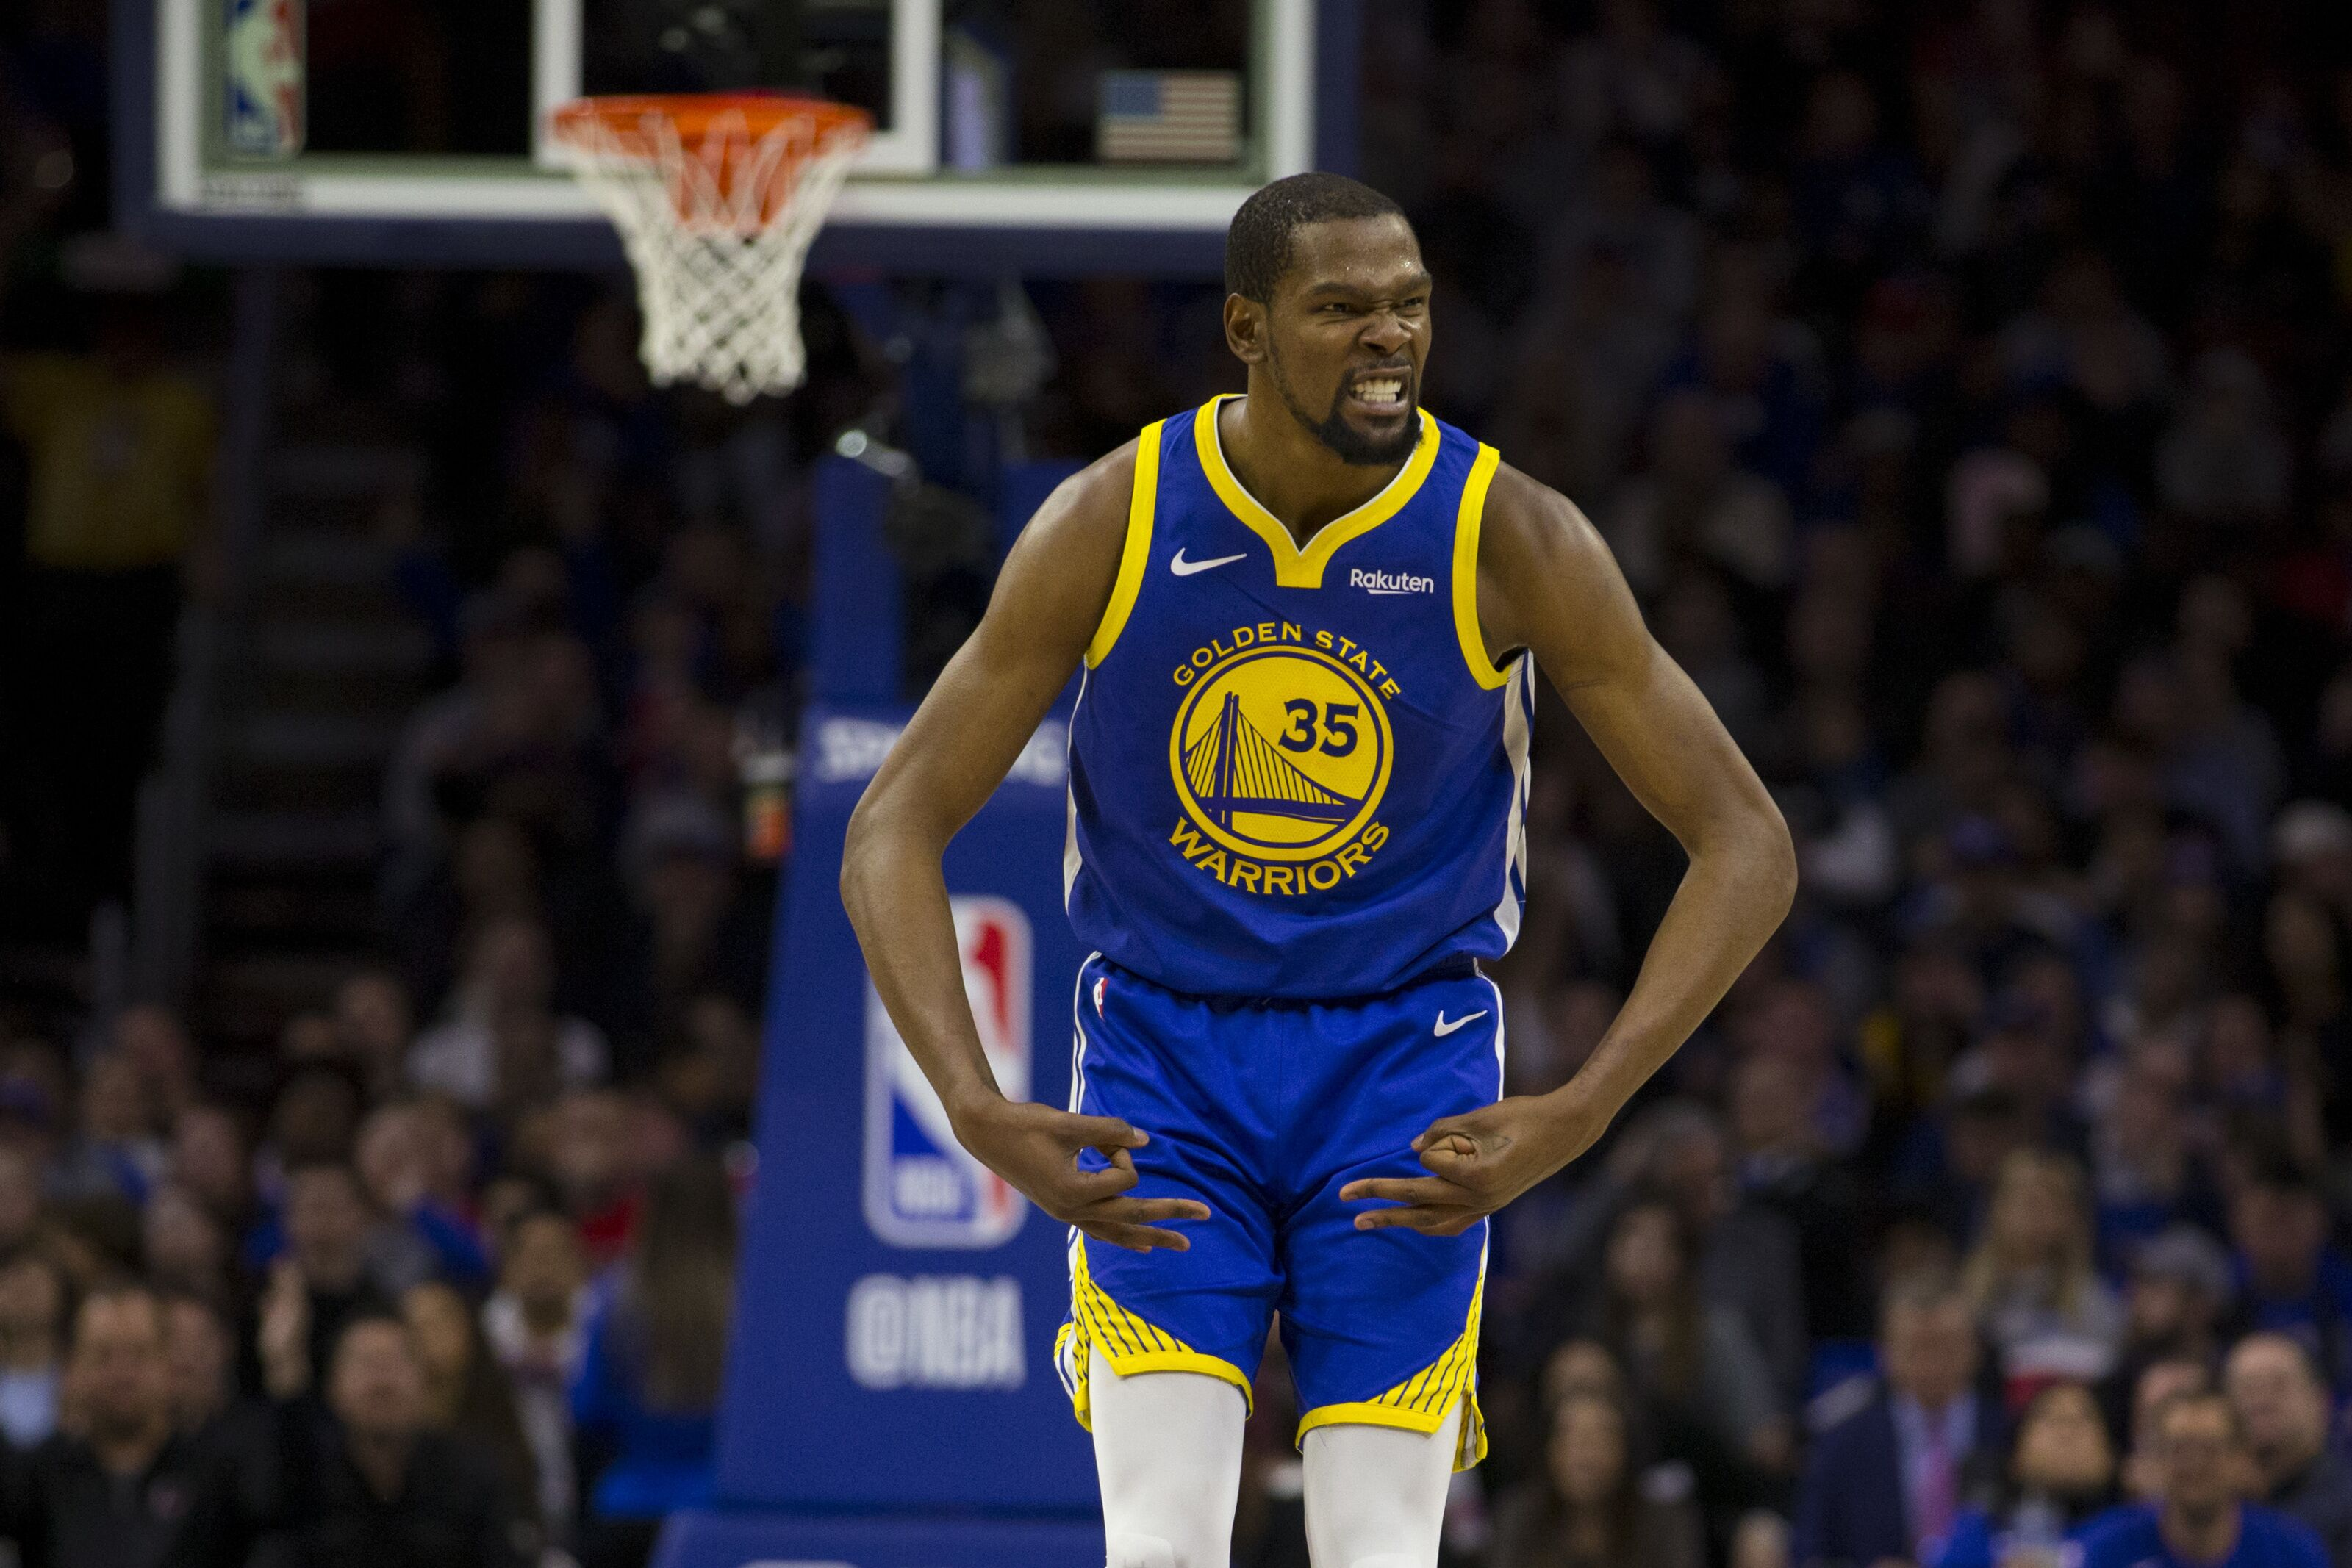 d7e8955286d0 Golden State Warriors victory without KD gives him a pass to leave